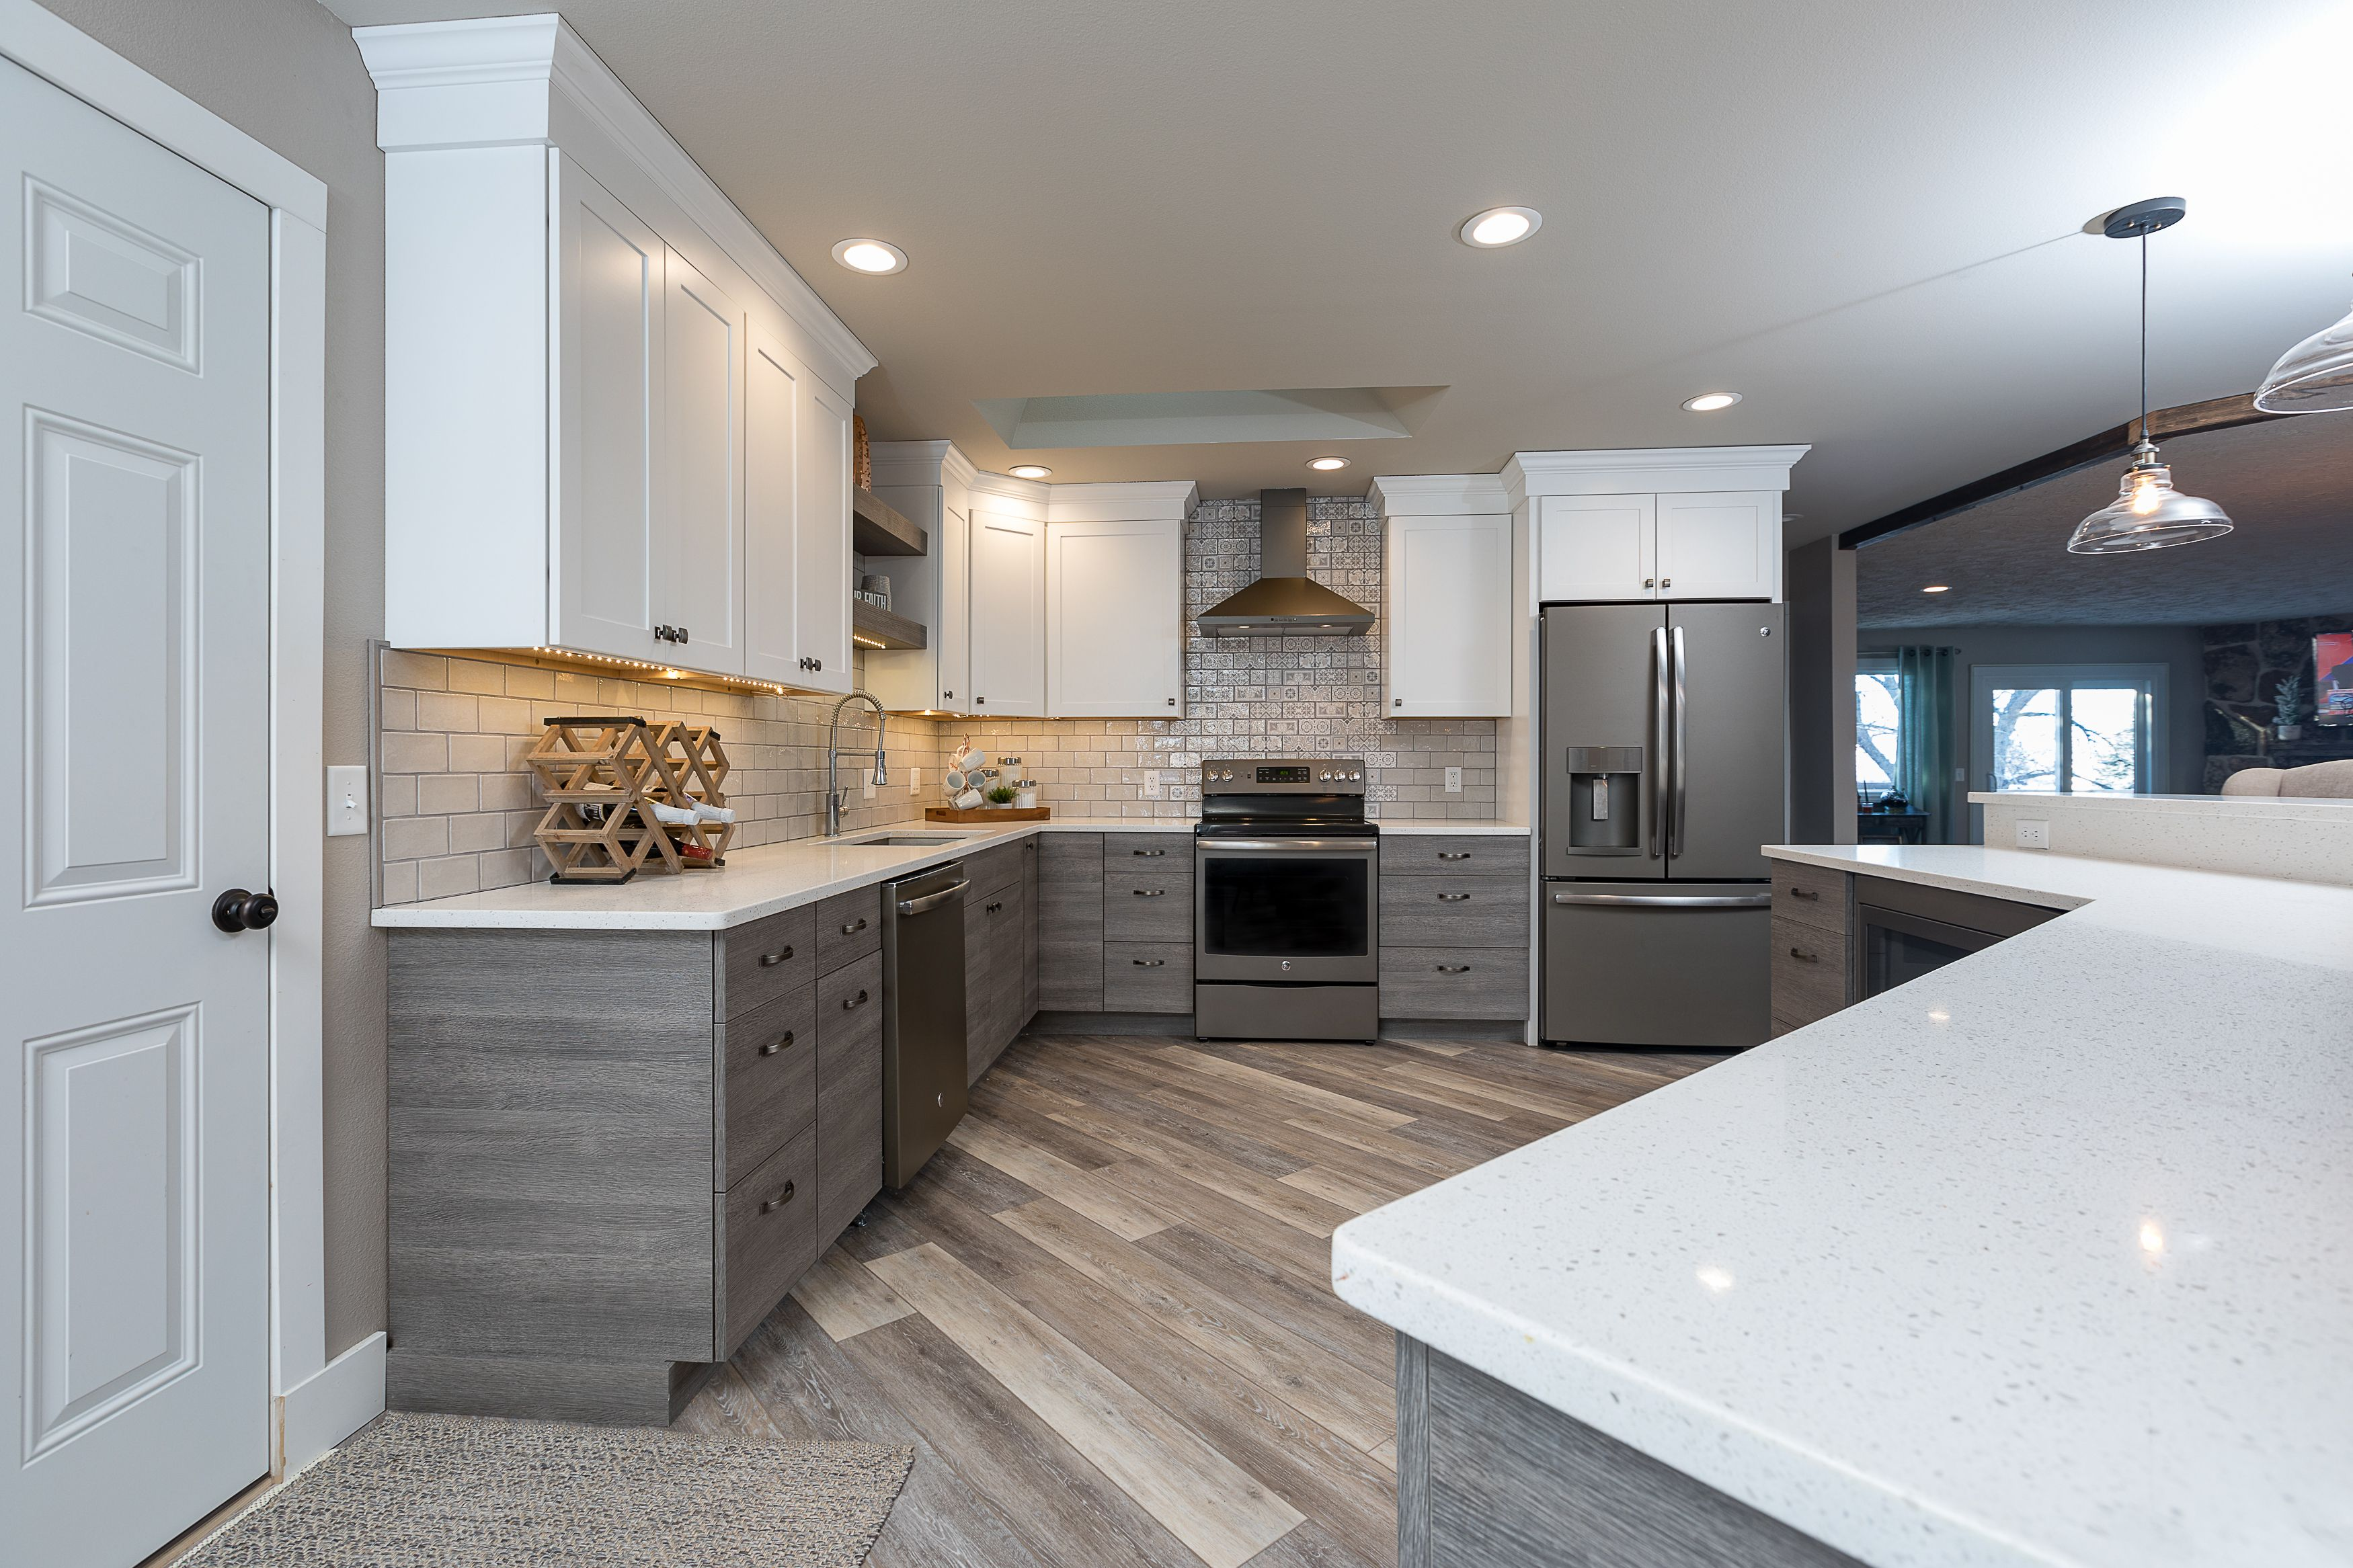 Transitional Kitchen Contemporary Textured Laminate Base With White Shaker Uppers Transitional Kitchen Transitional Living Rooms Kitchen And Bath Design